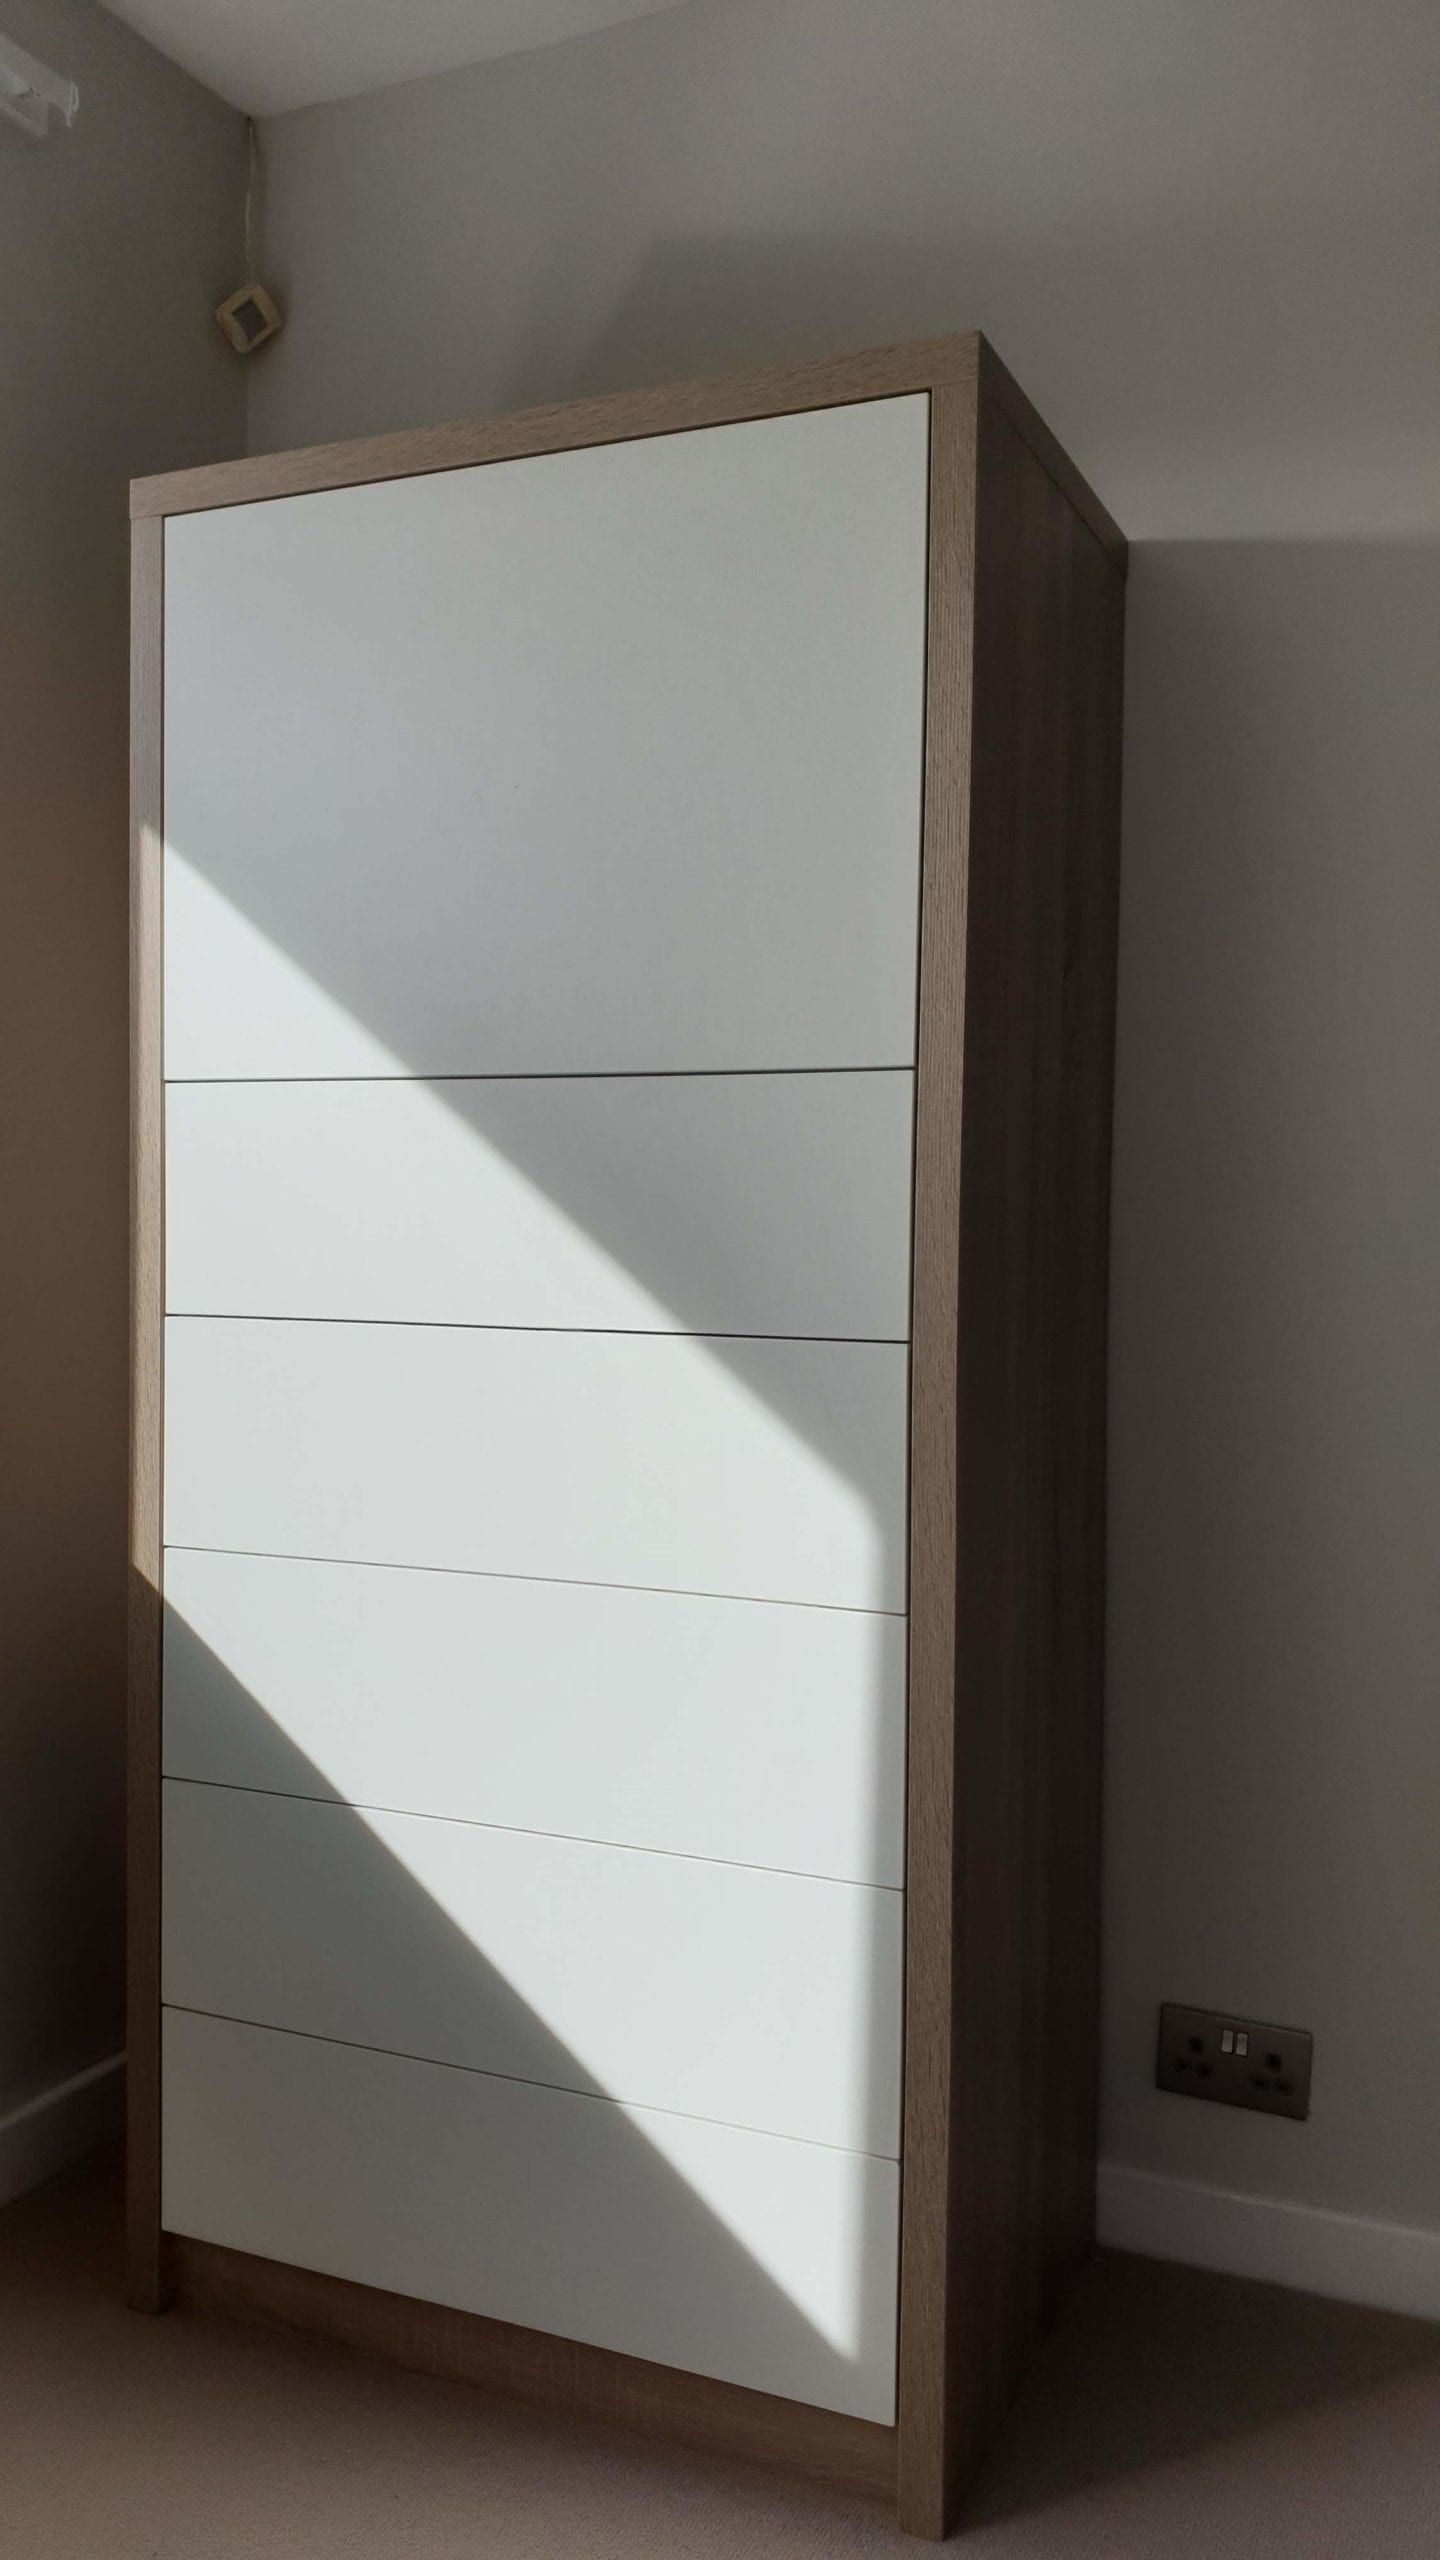 Silkowood fitted furniture